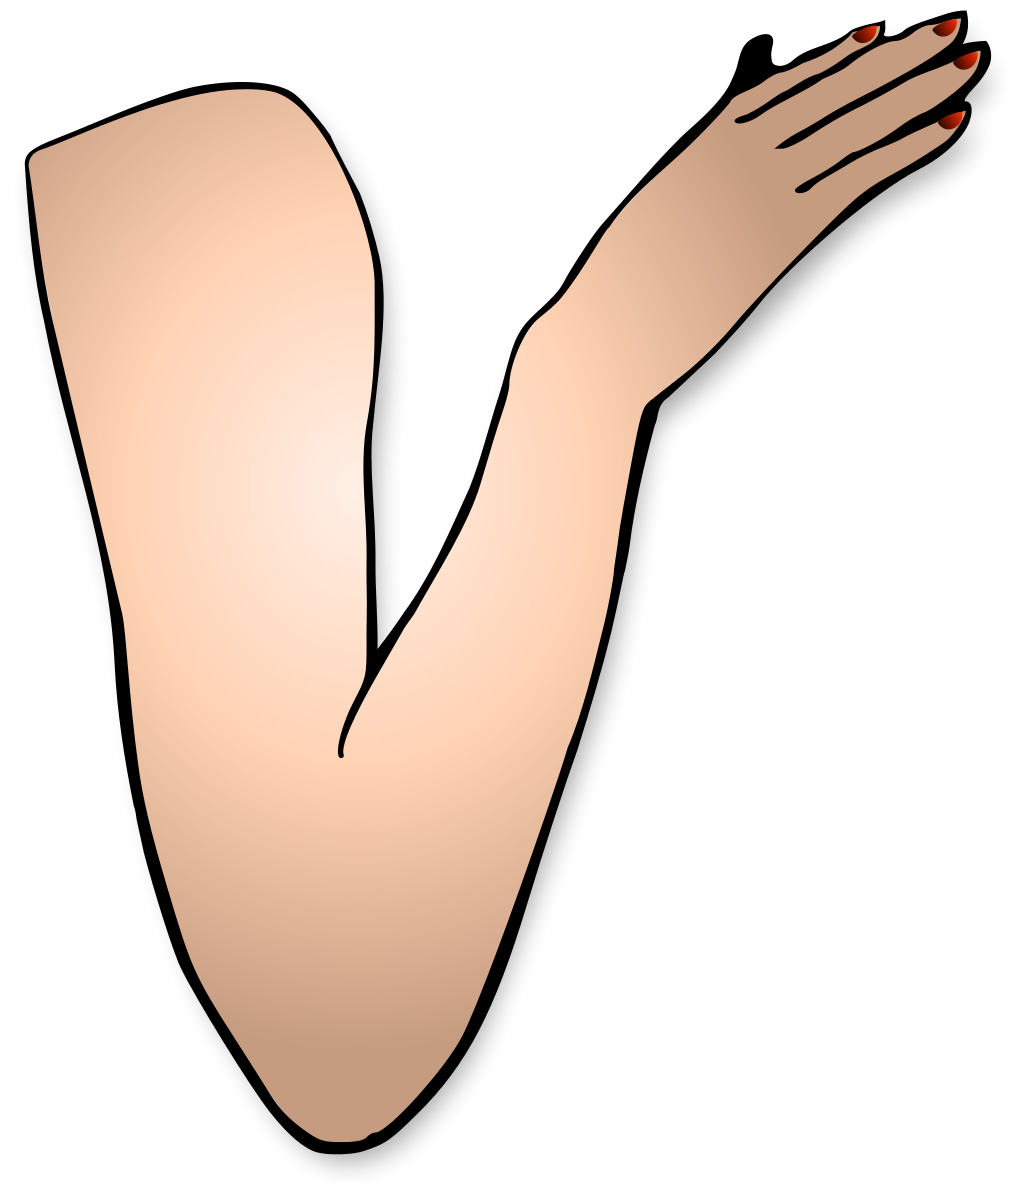 Hand clipart muscular. Arms image group left